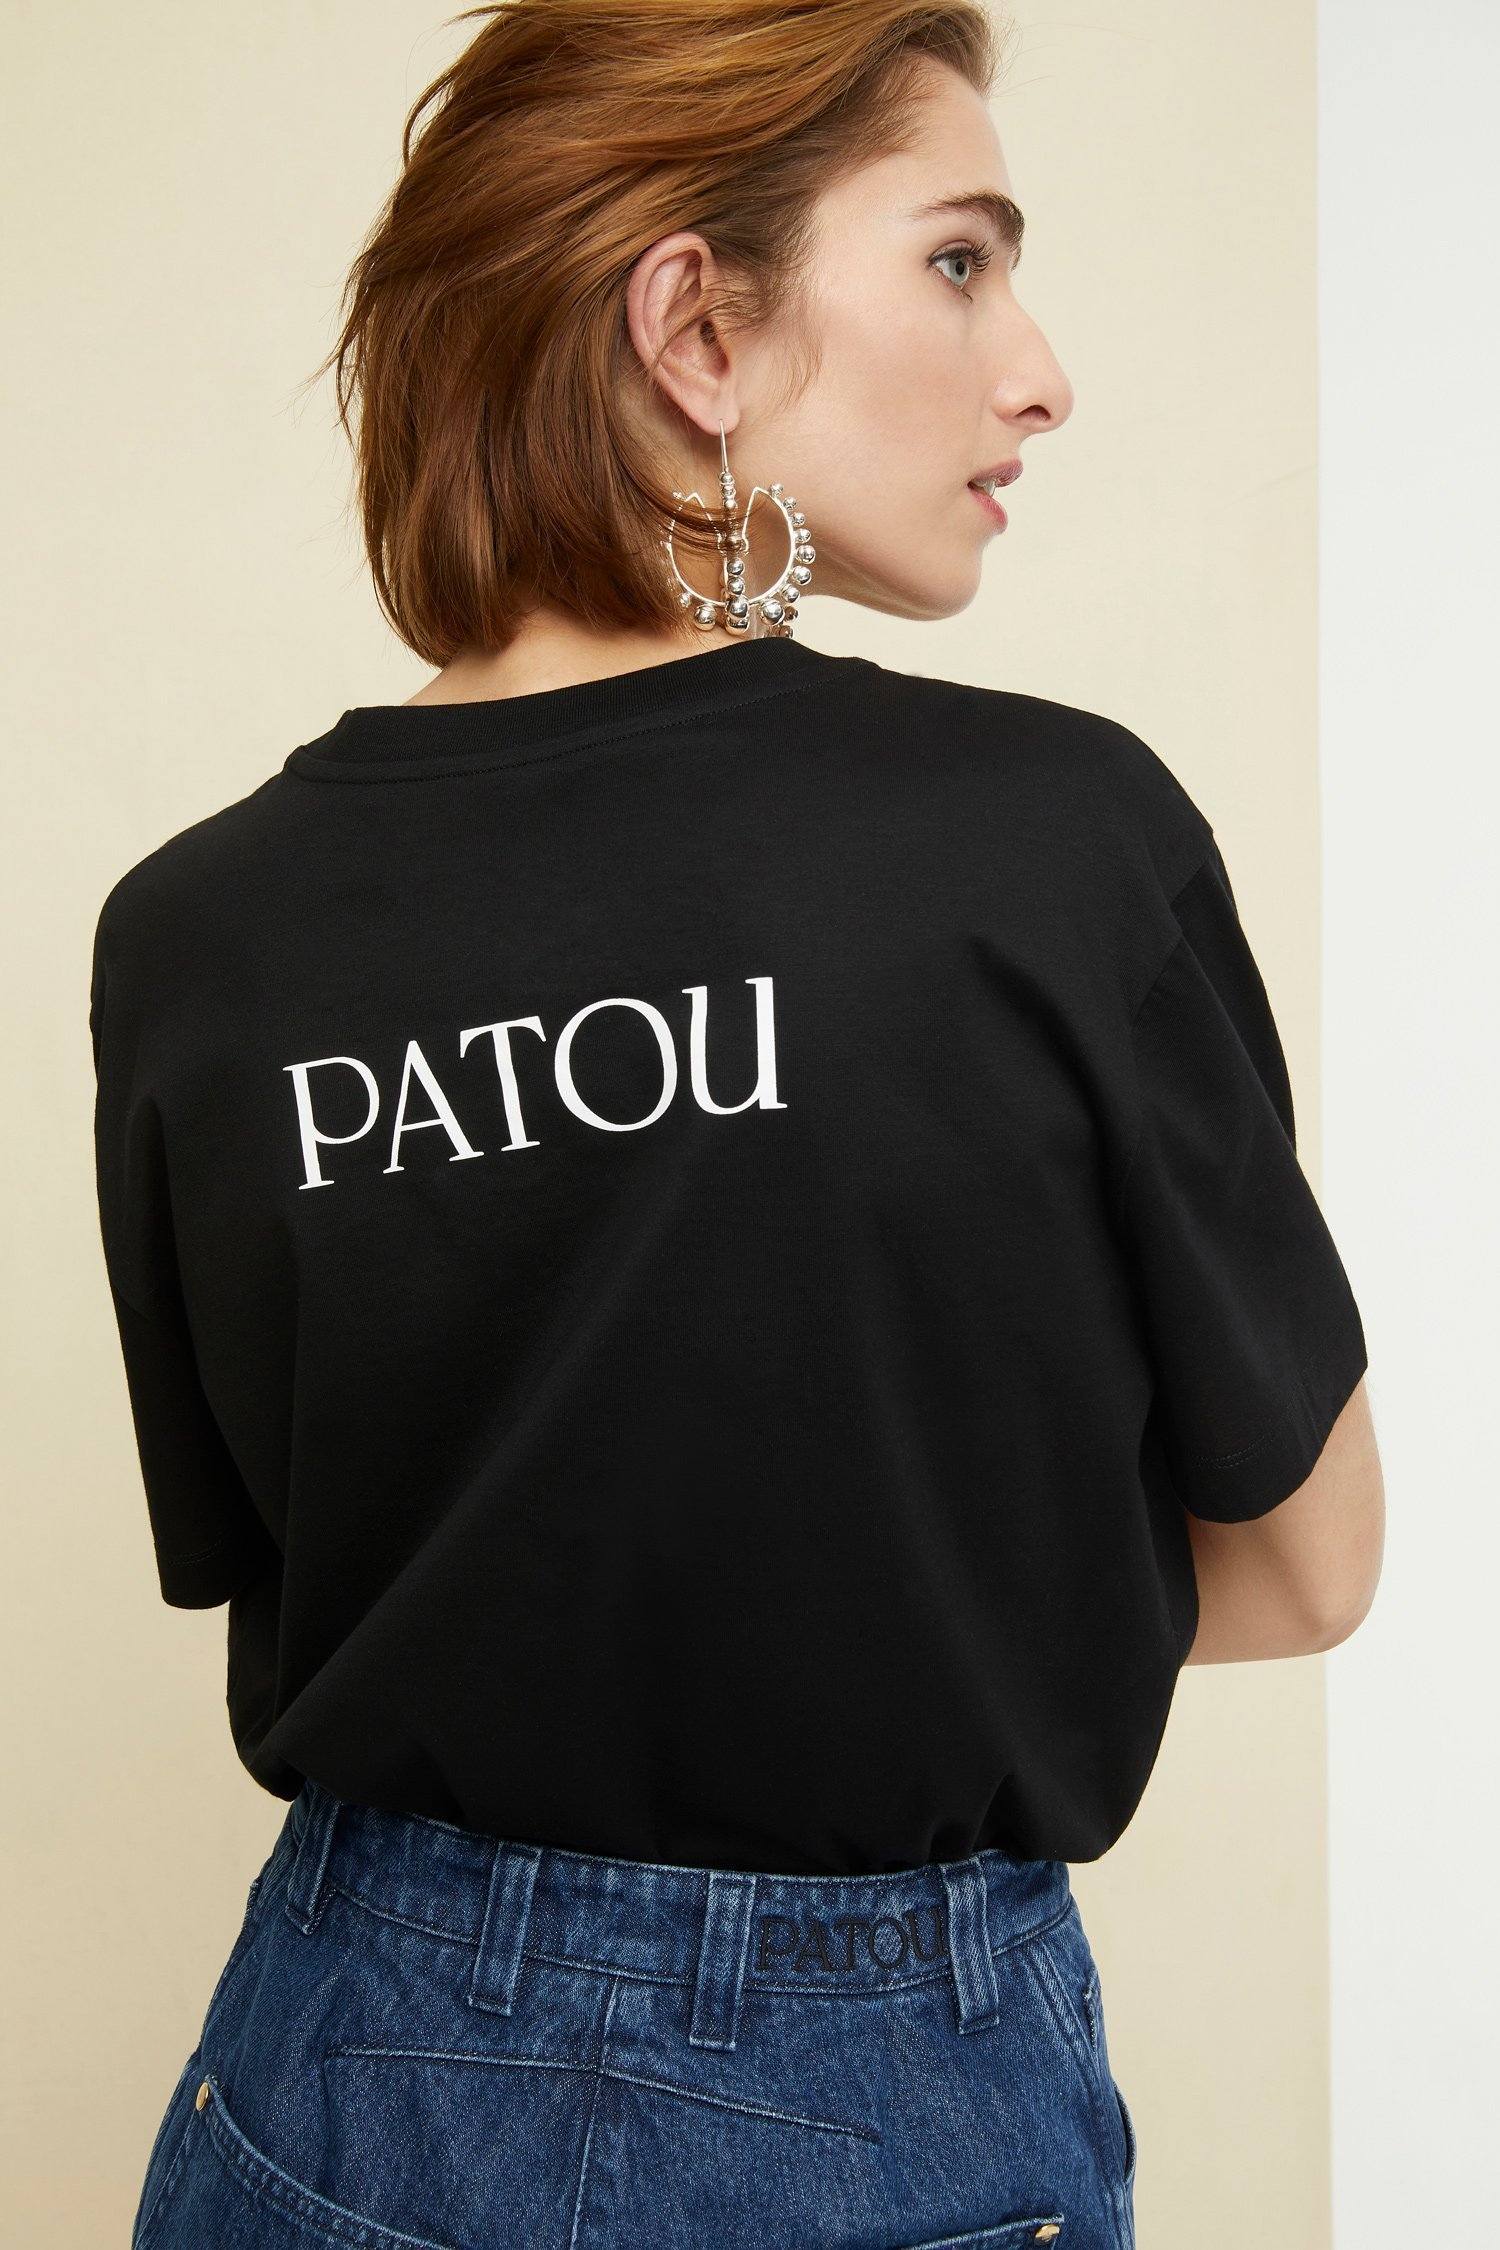 shop patou clothing